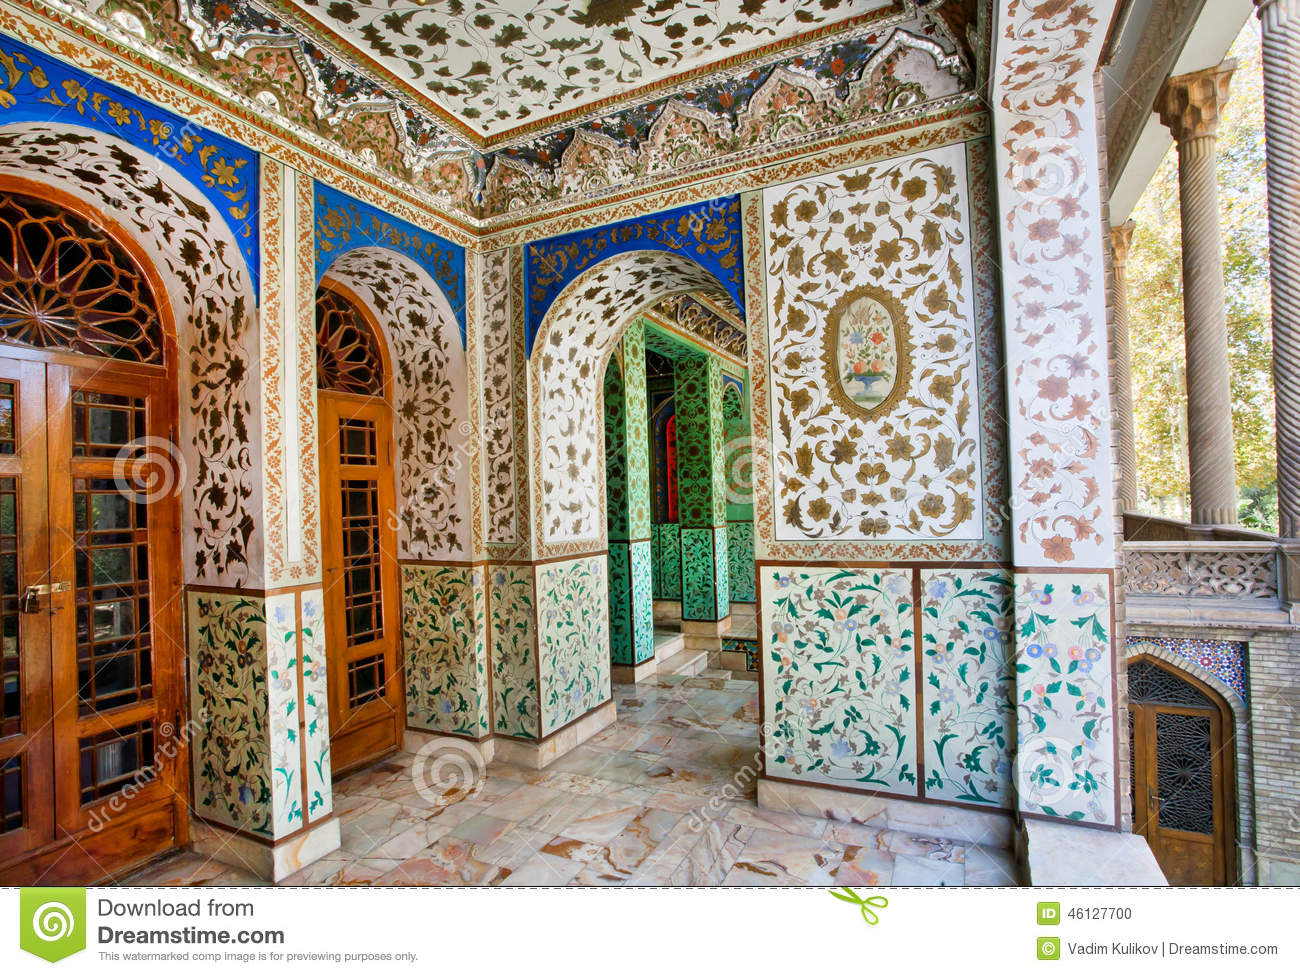 Editorial Stock Photo & Traditional Persian Design Of The Palace Golestan With Painted ... Pezcame.Com